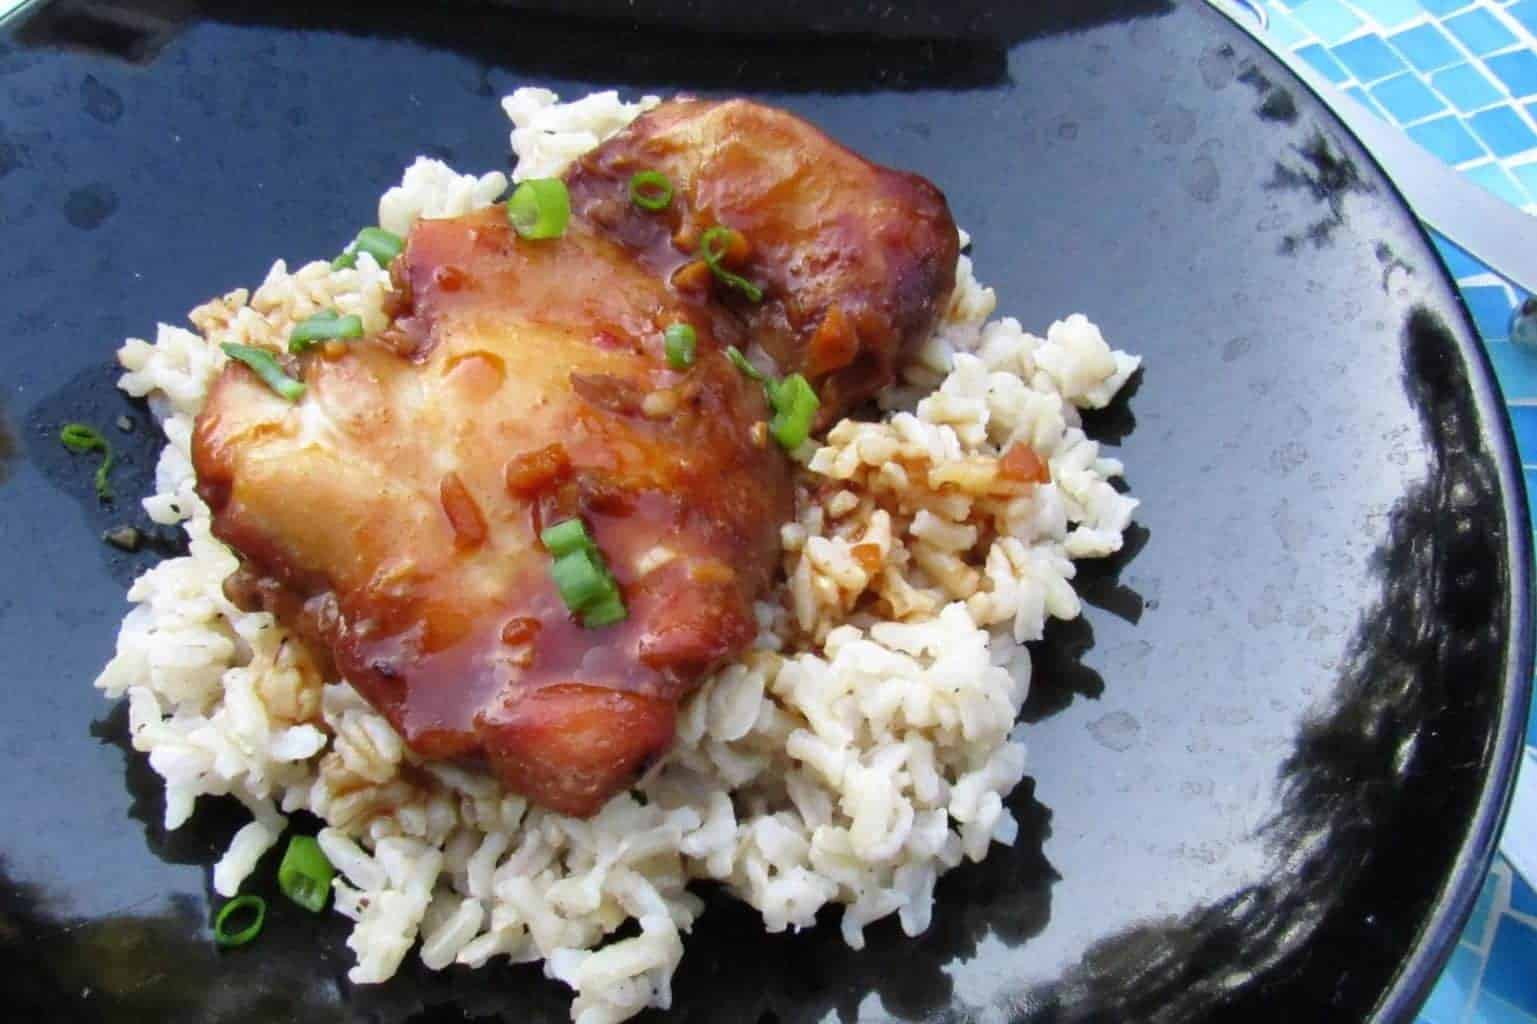 Healthy Crockpot Chicken Thighs 20 Of the Best Ideas for Chicken Thigh Crock Pot Recipes